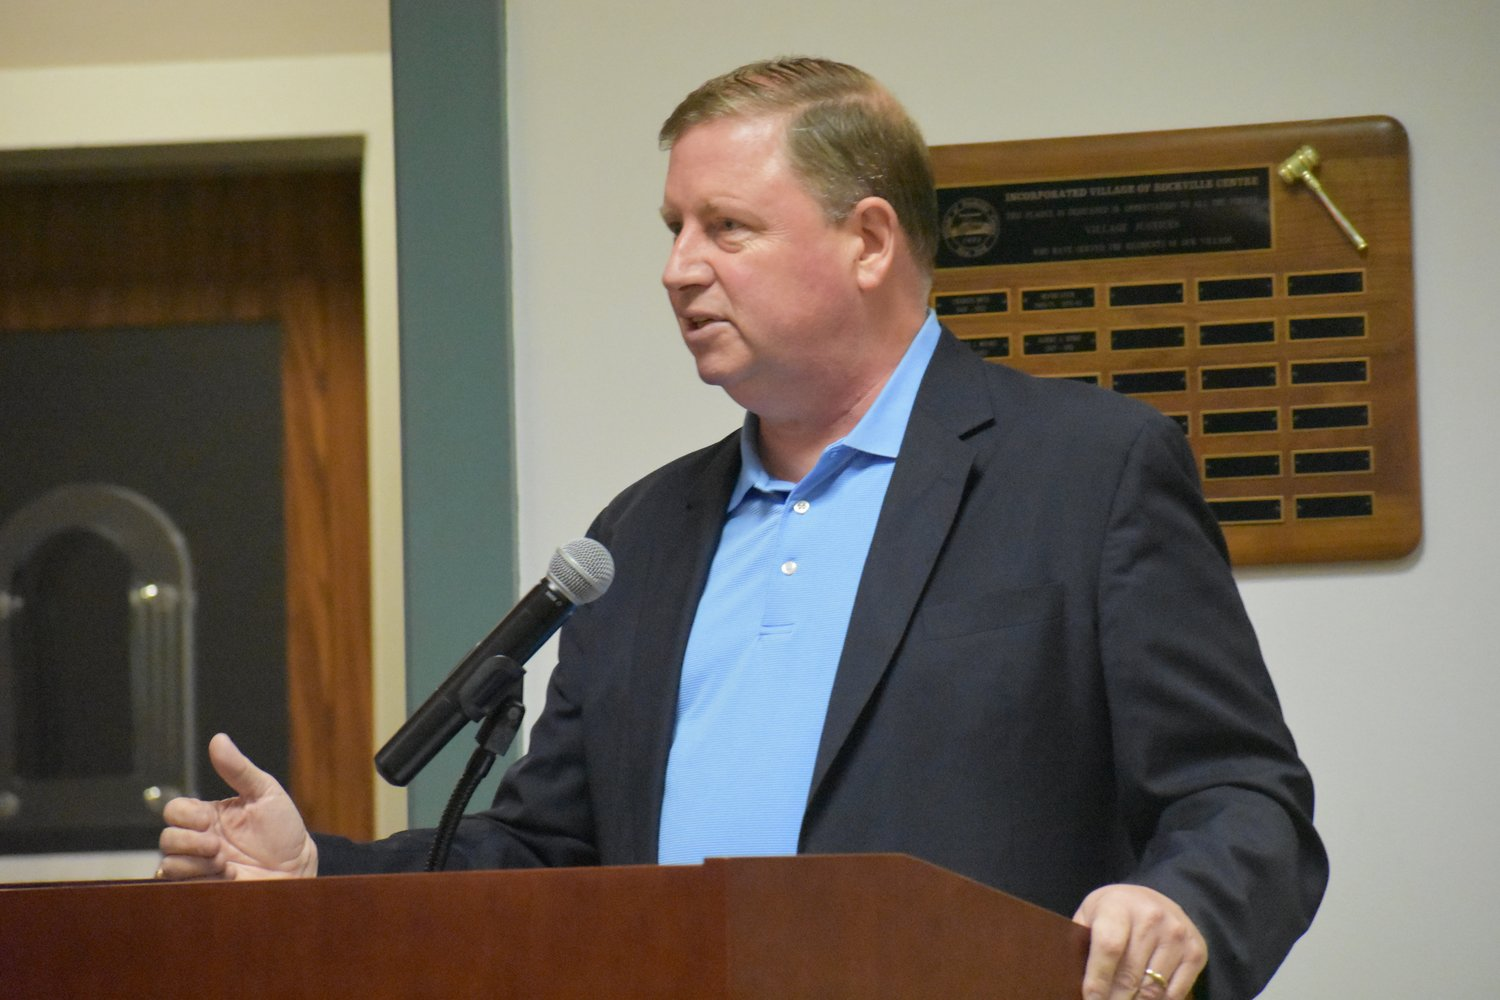 Michael Mulhall said he would dismiss the board members if he was an elected official.